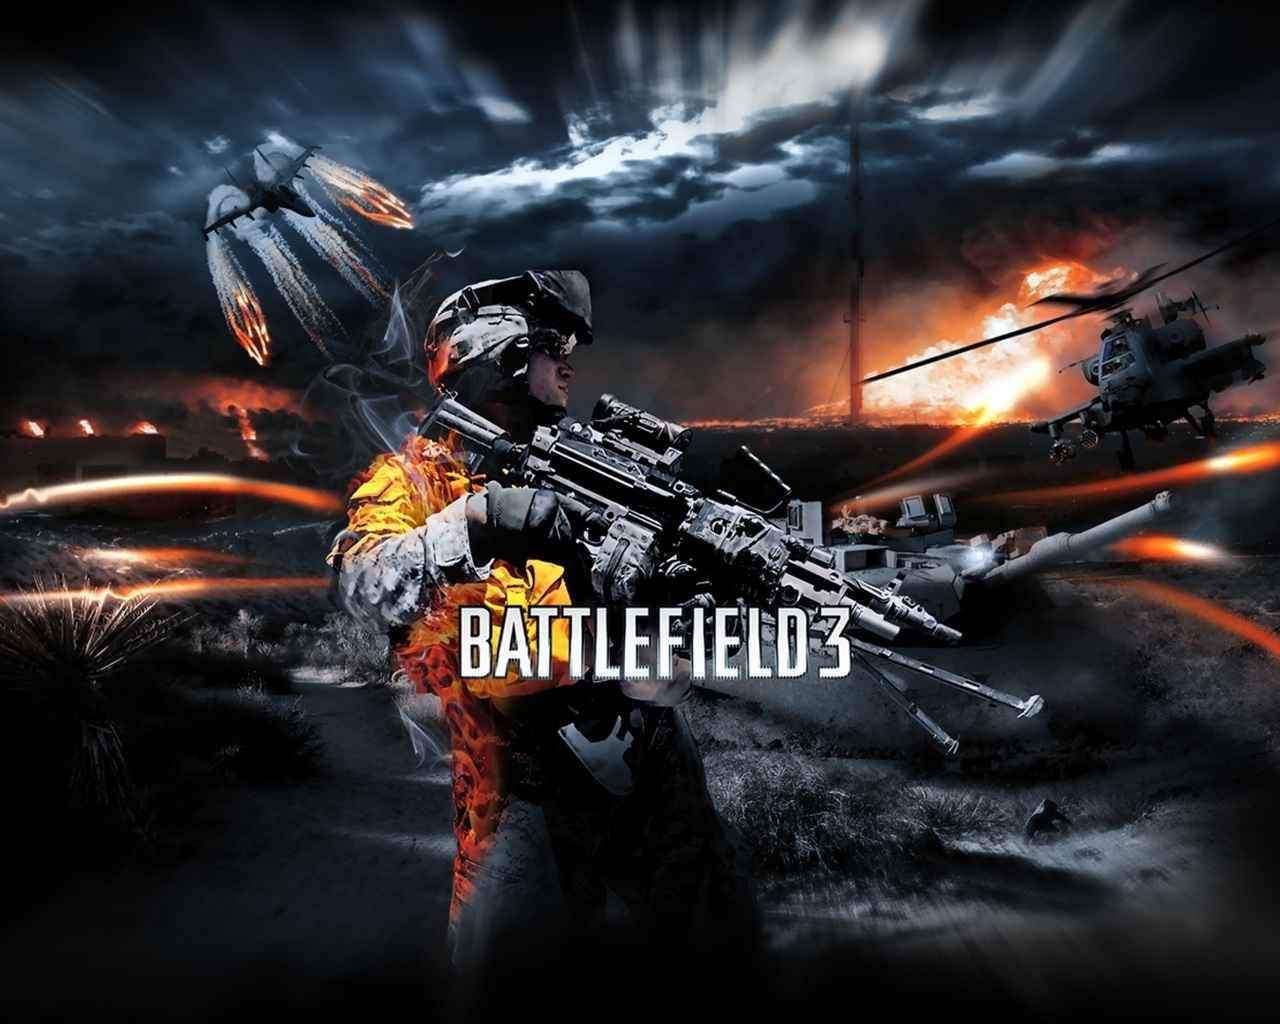 wallpaper battlefield 3 game hd 1920x1080 full hd picture, image